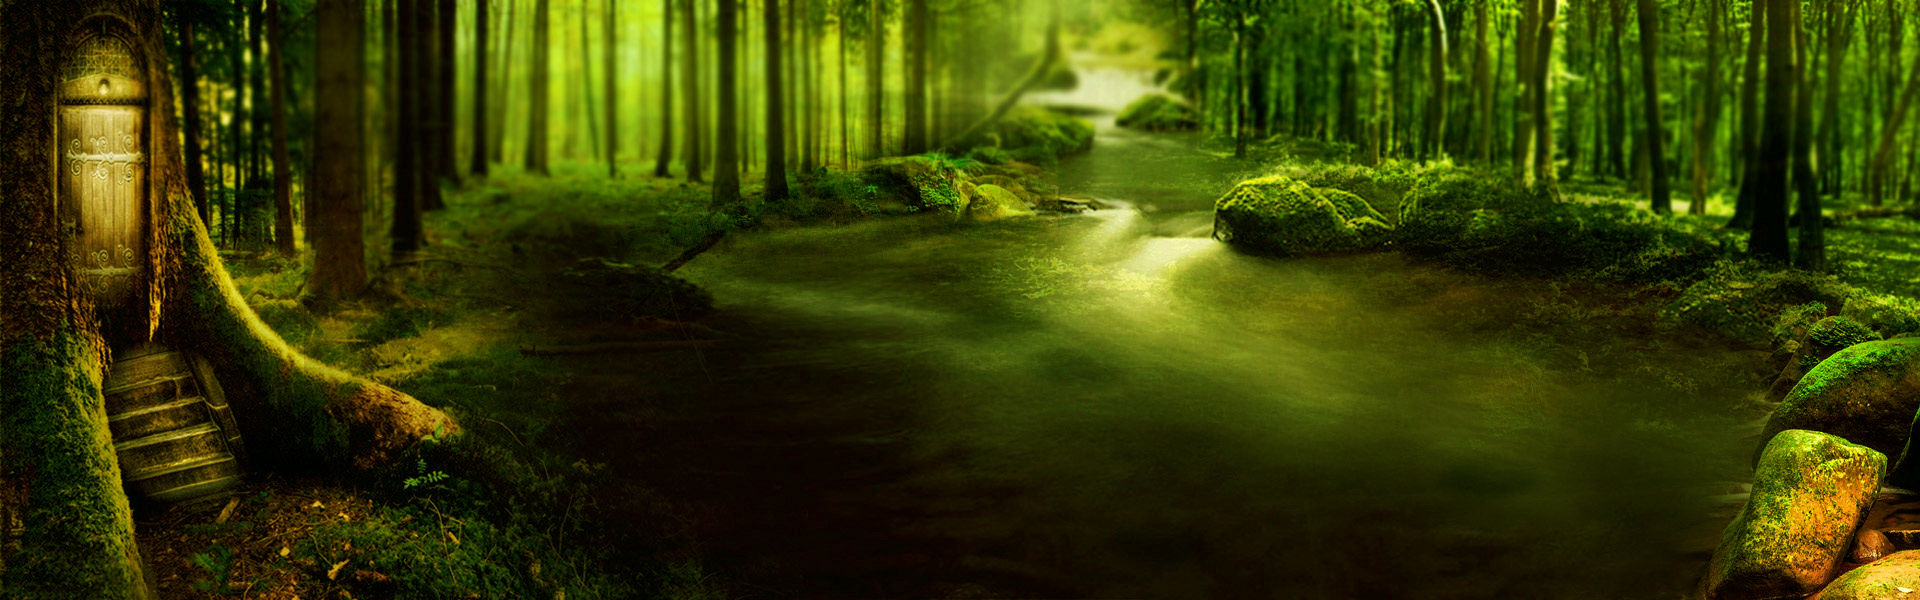 science fiction fantasy forest green background  dream